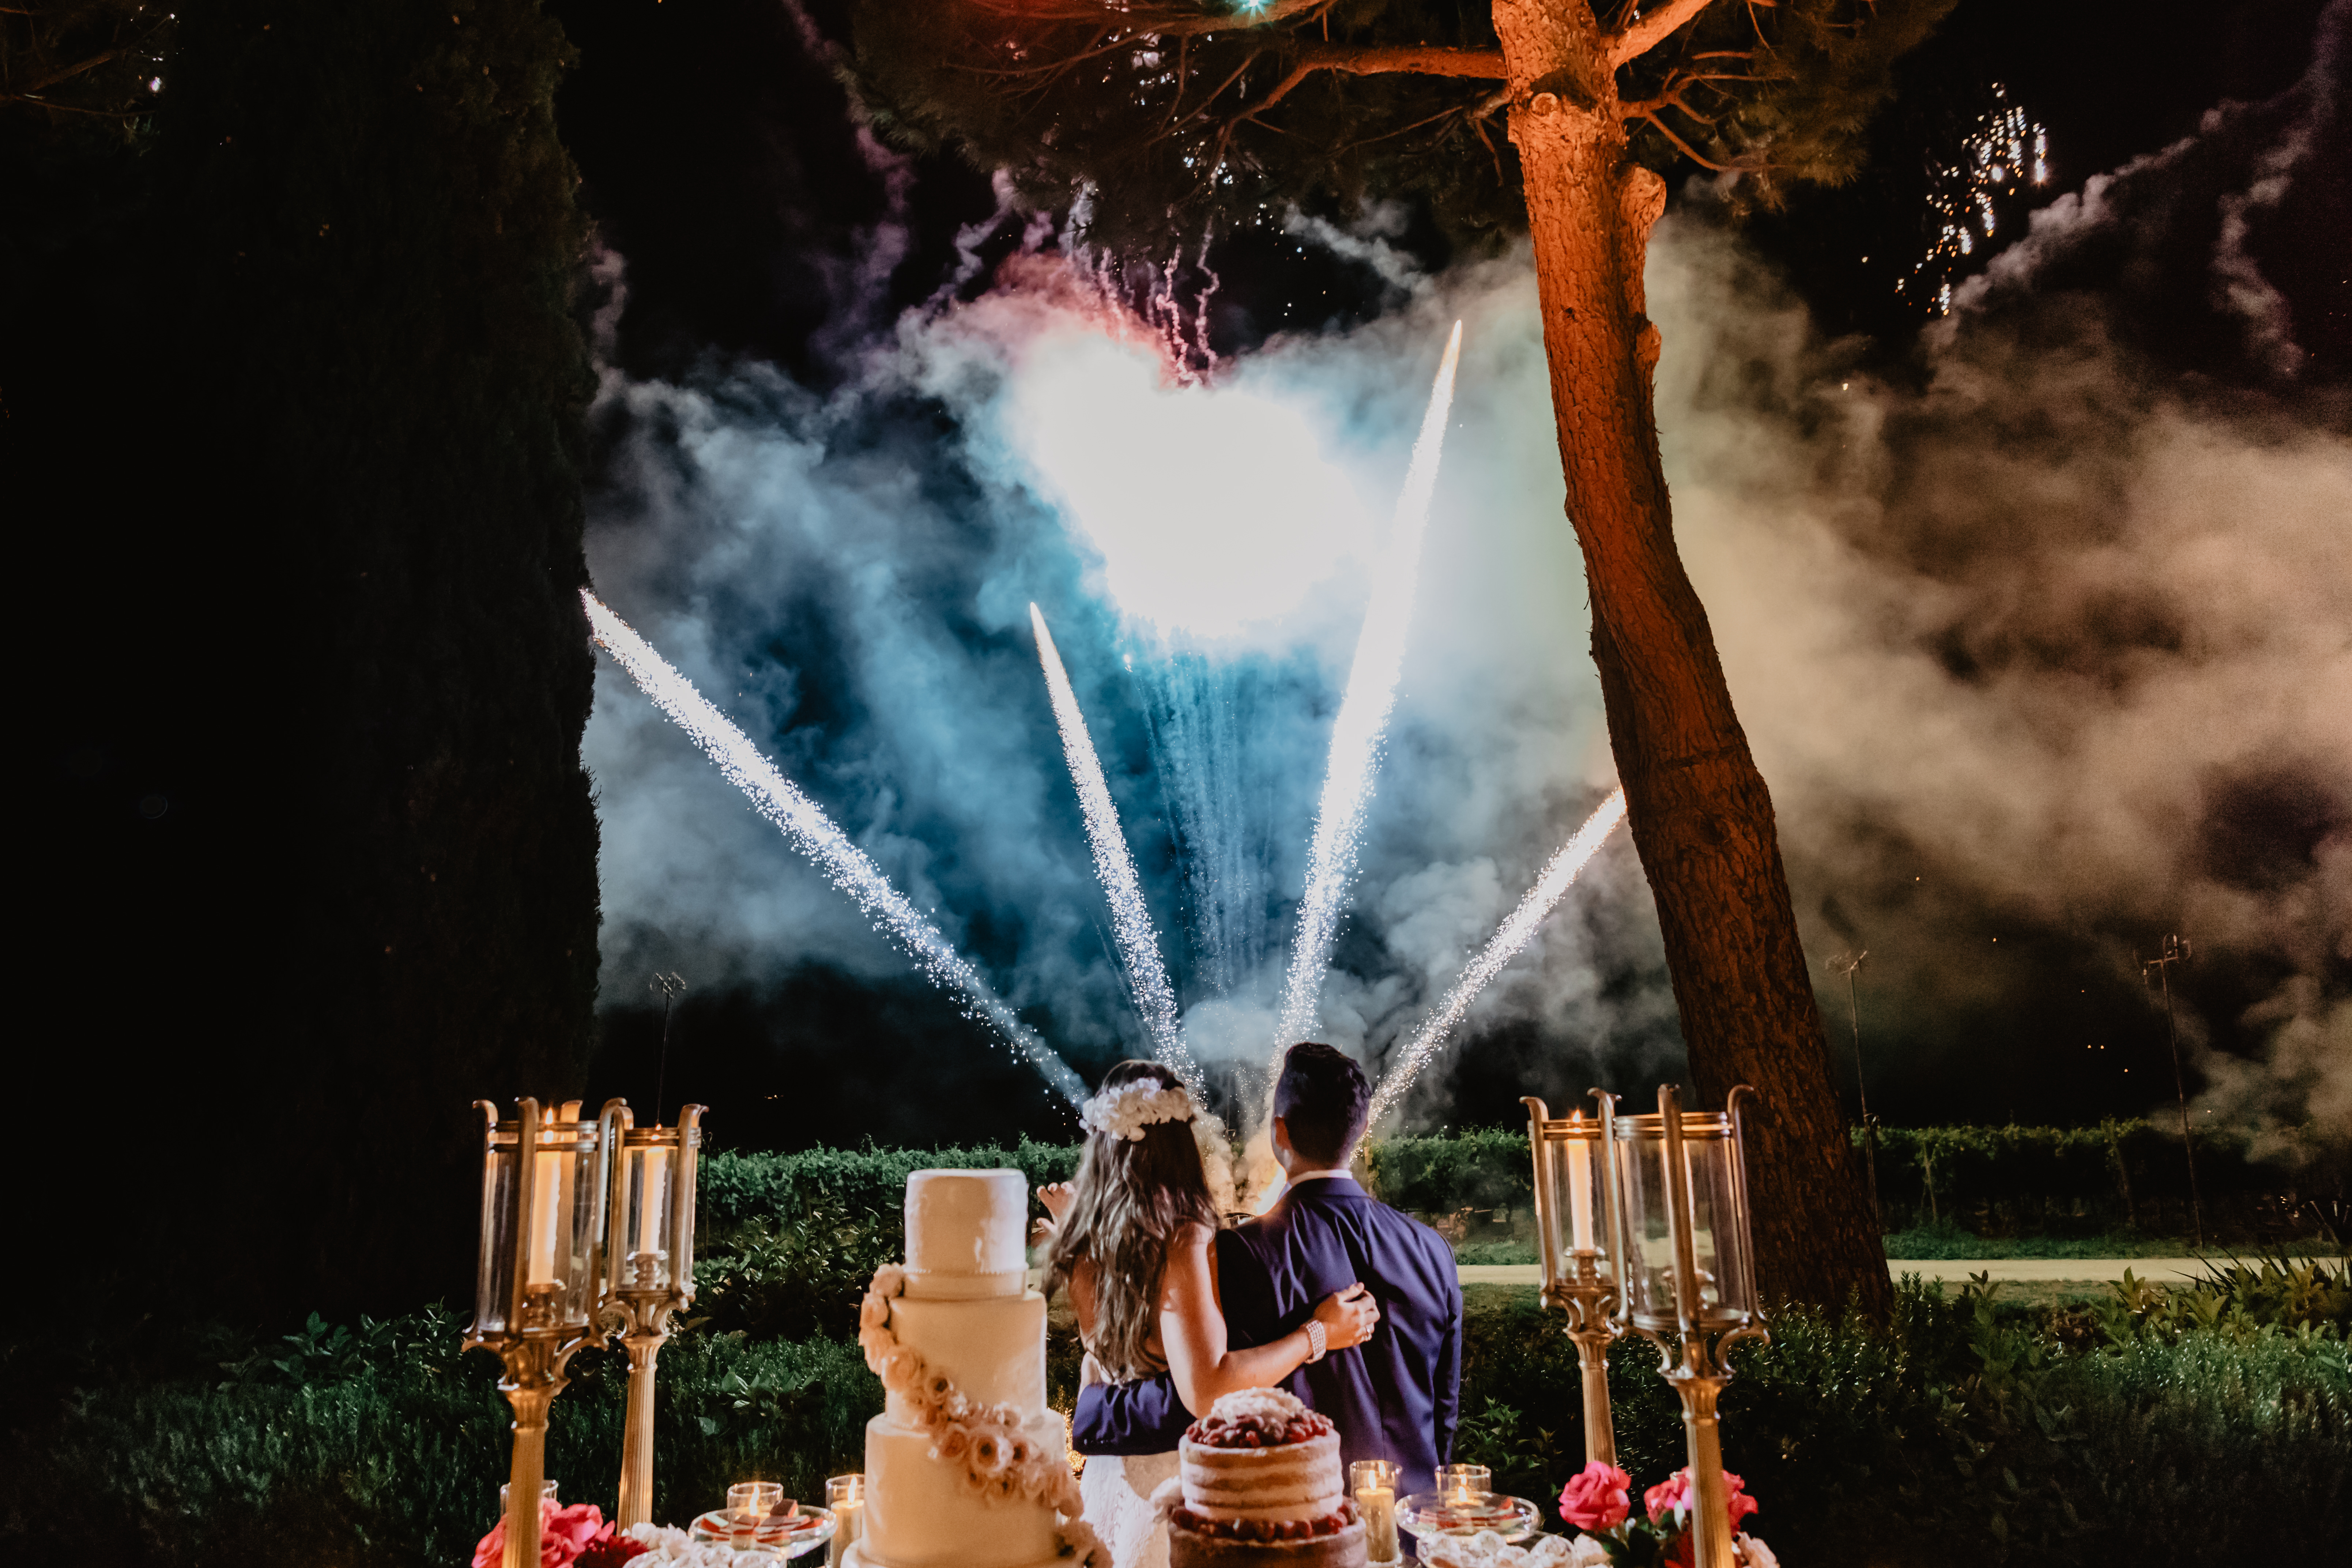 fireworks show during the wedding in a historic villa in the Tuscan hills